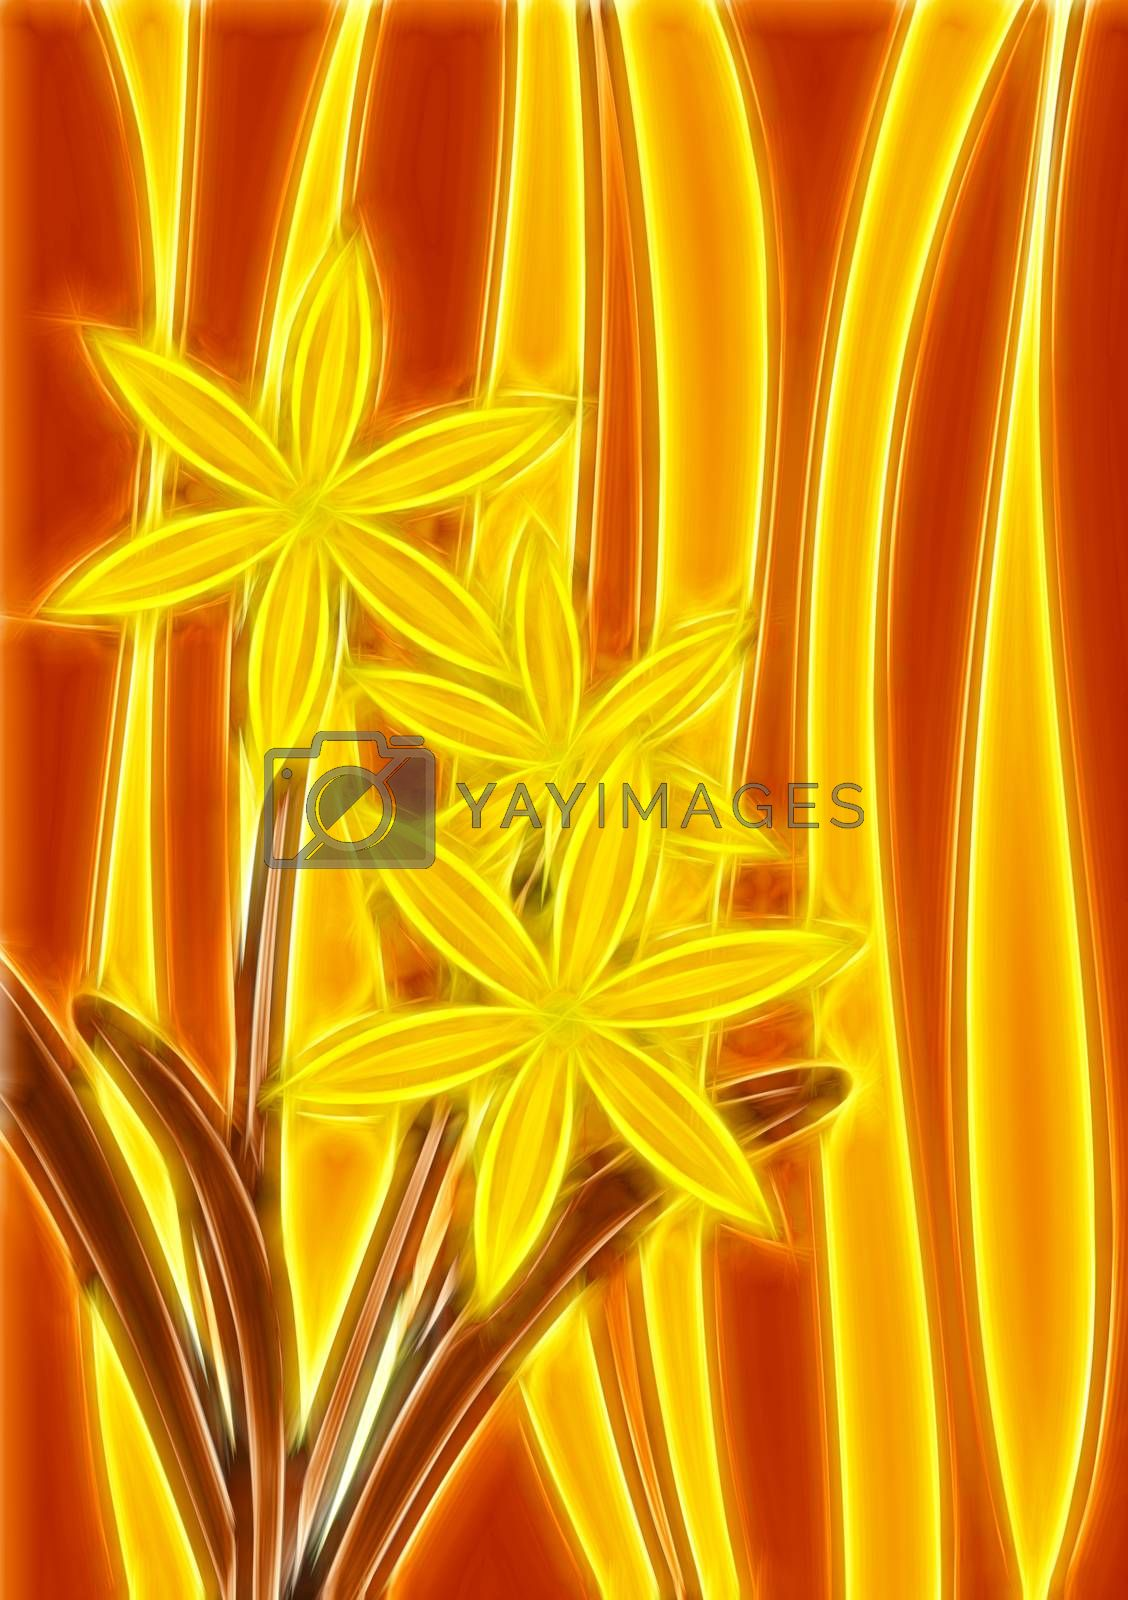 Royalty free image of yellow staines glass with flowers by CherJu